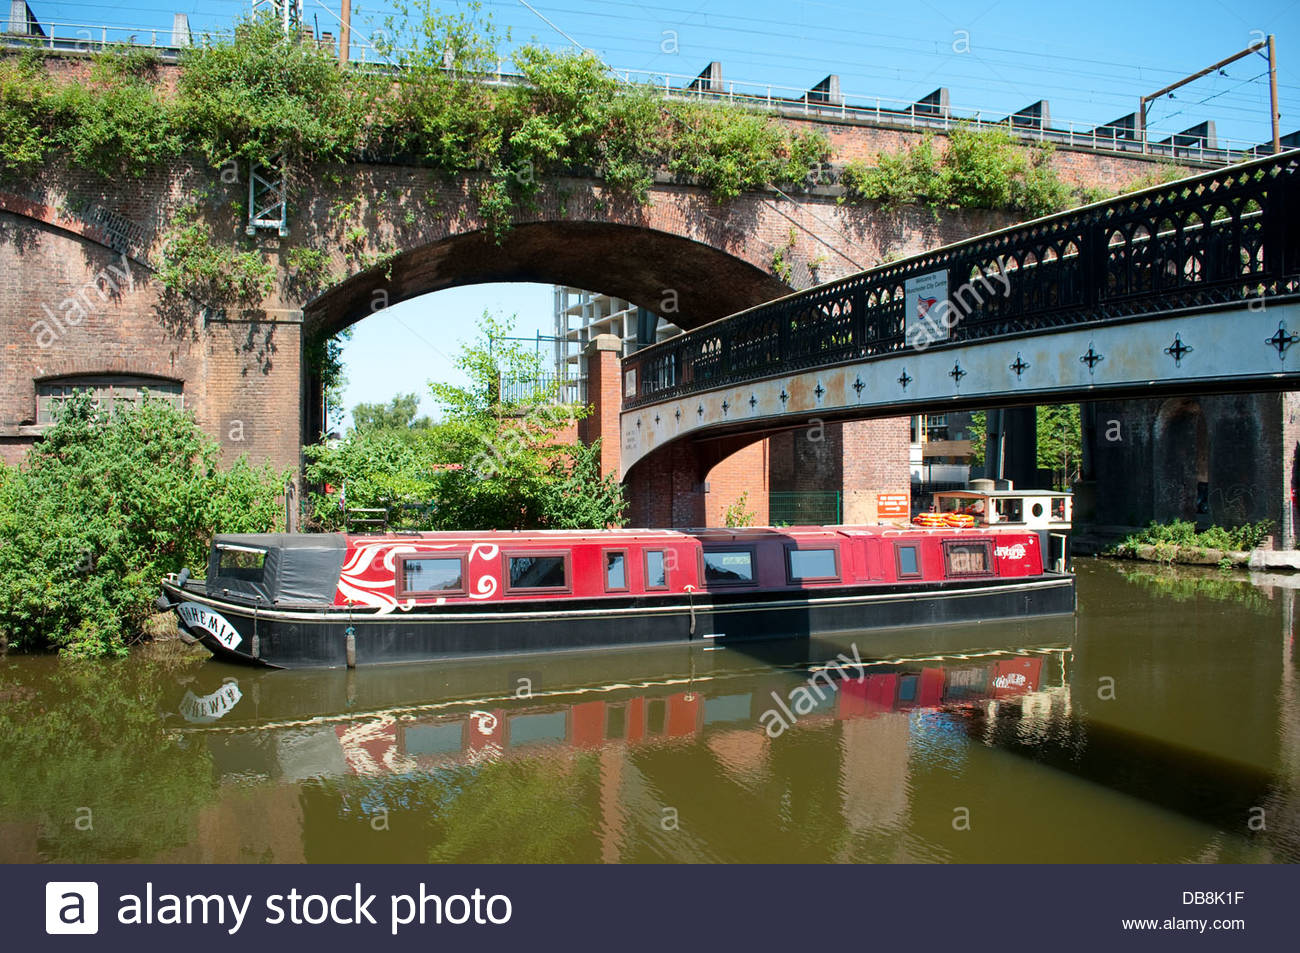 Longboat on Bridgewater canal near the railway viaduct, Manchester, UK - Stock Image